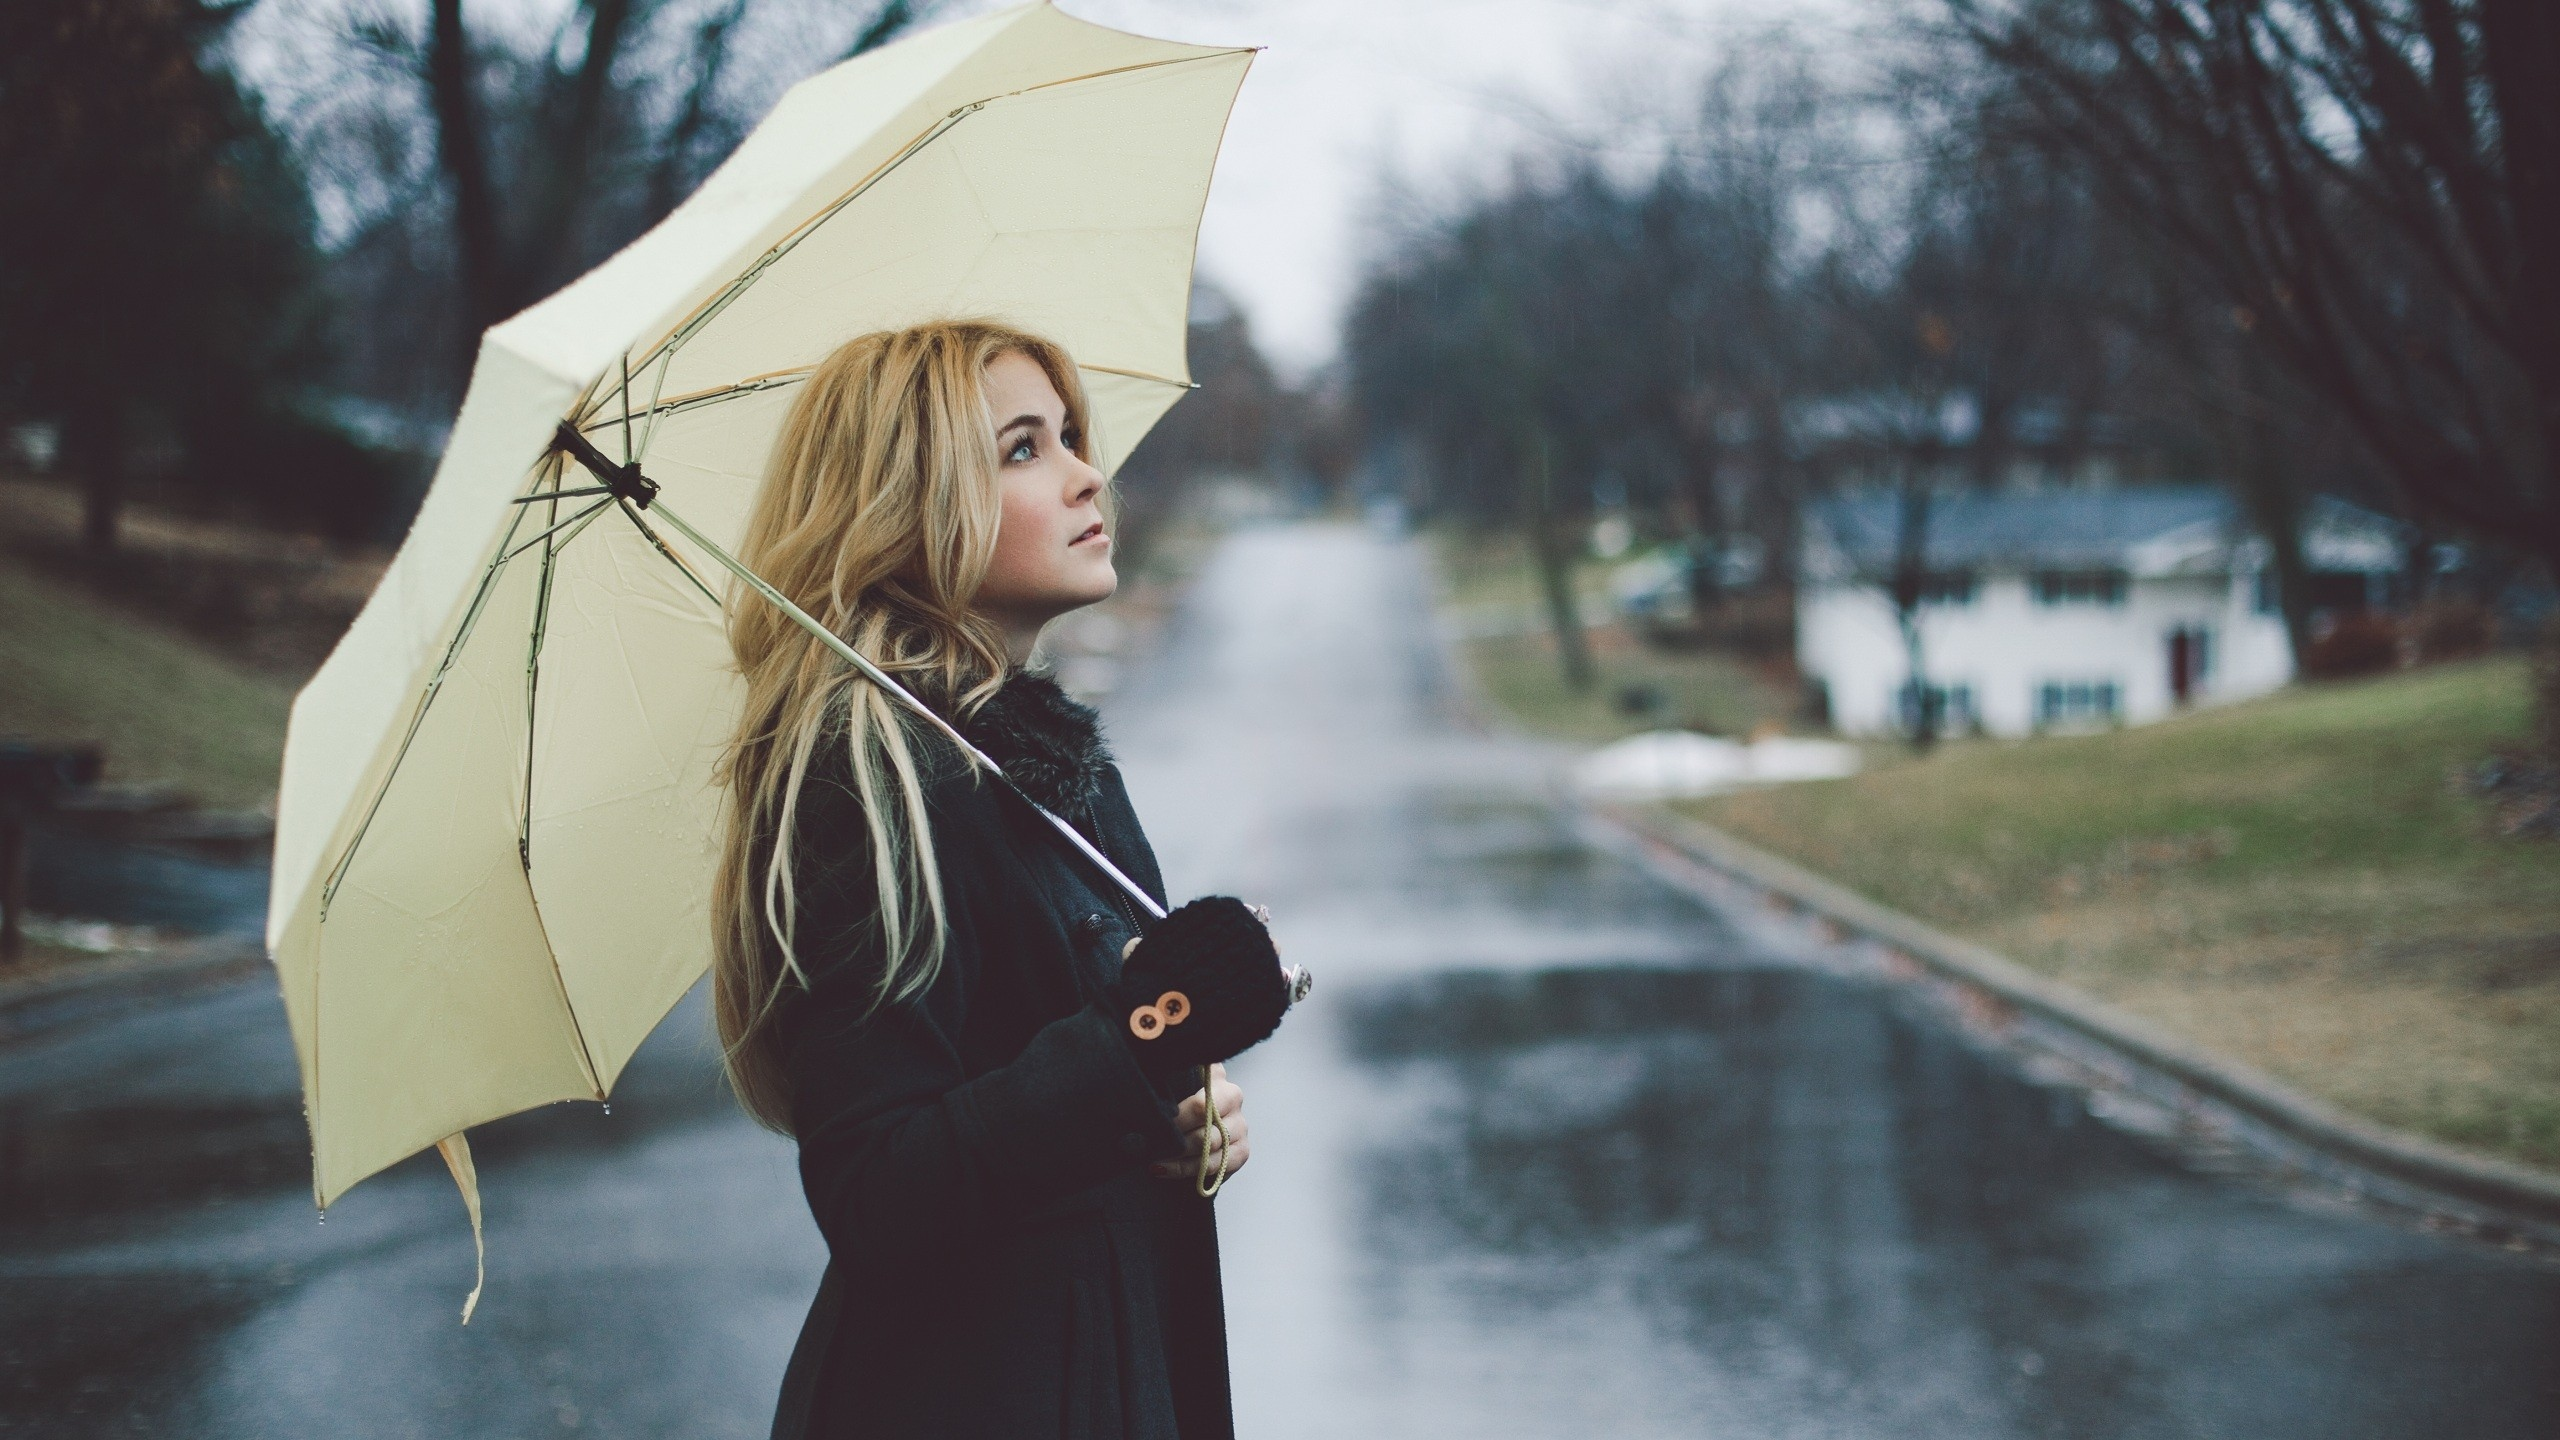 2560x1440 Wallpaper girl, blonde, umbrella, street, rain, raincoat, mood